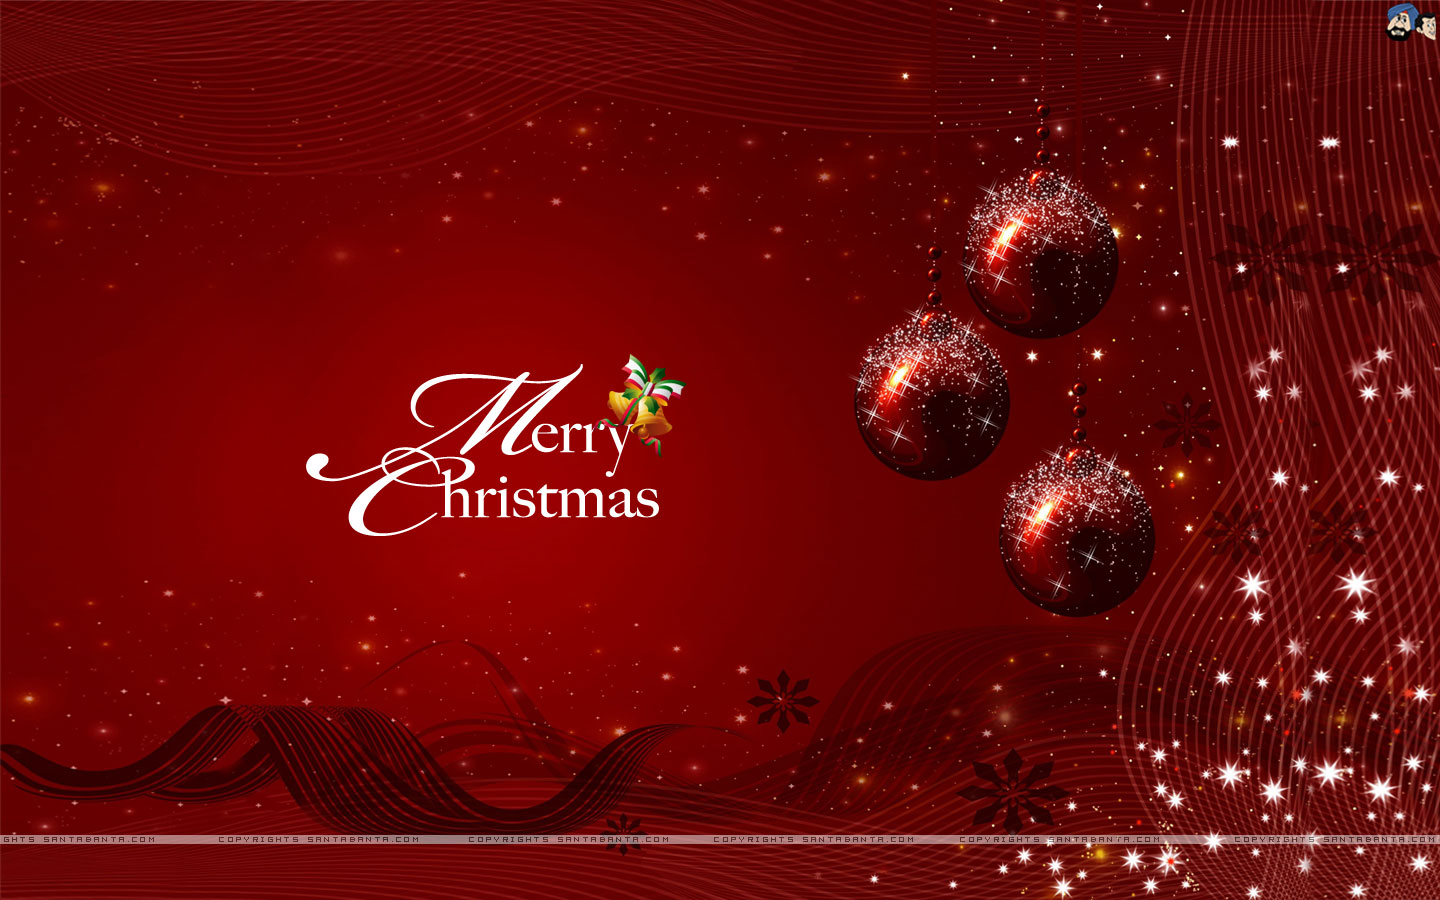 Christmas Wallpapers Widescreen 1440x900